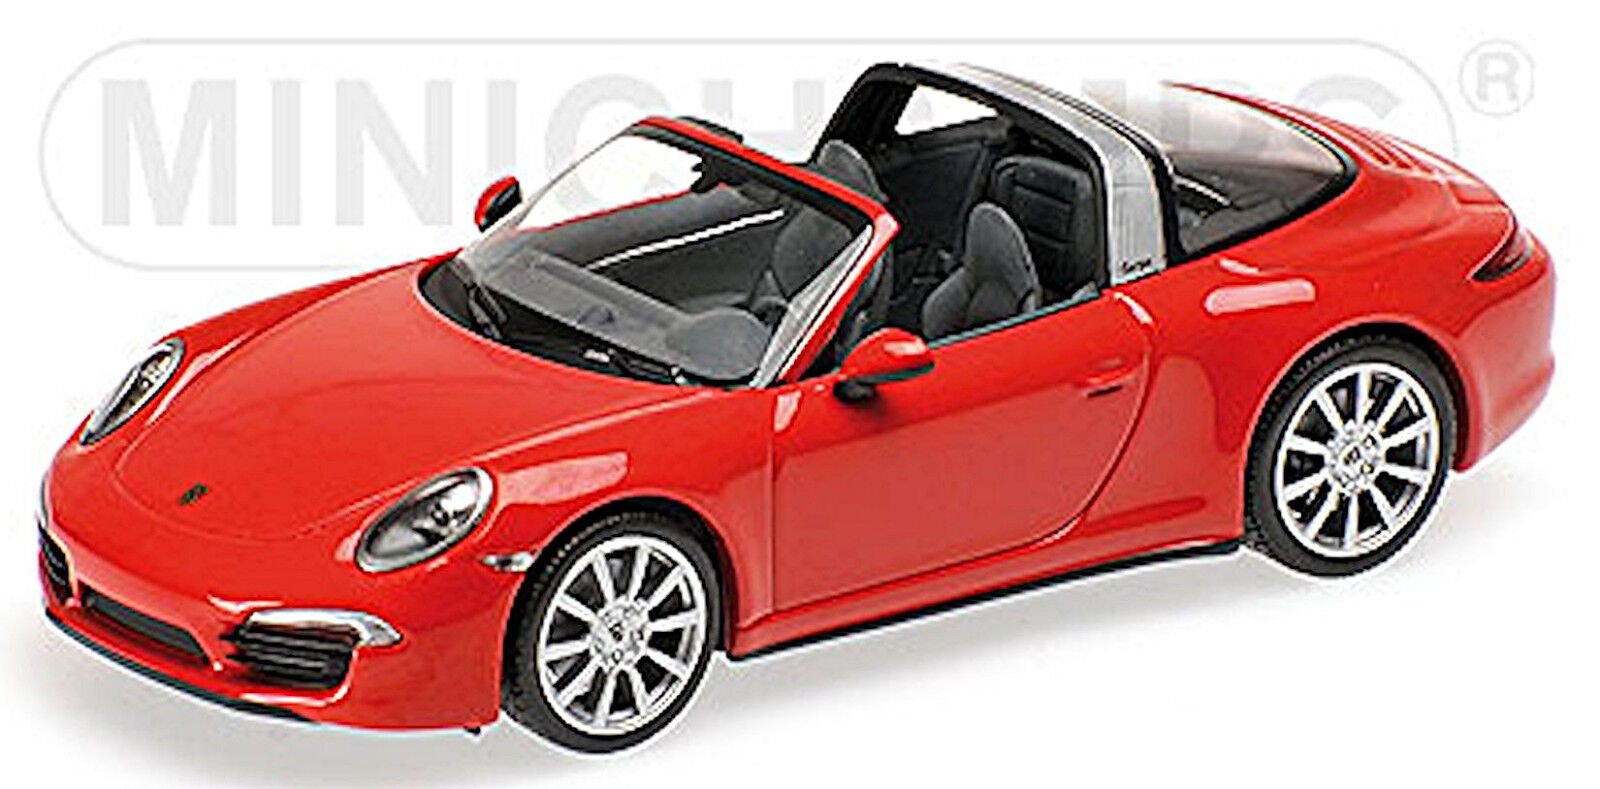 Porsche 911 targa type  991 - 2014-18  indian rouge rouge 1 43  vente